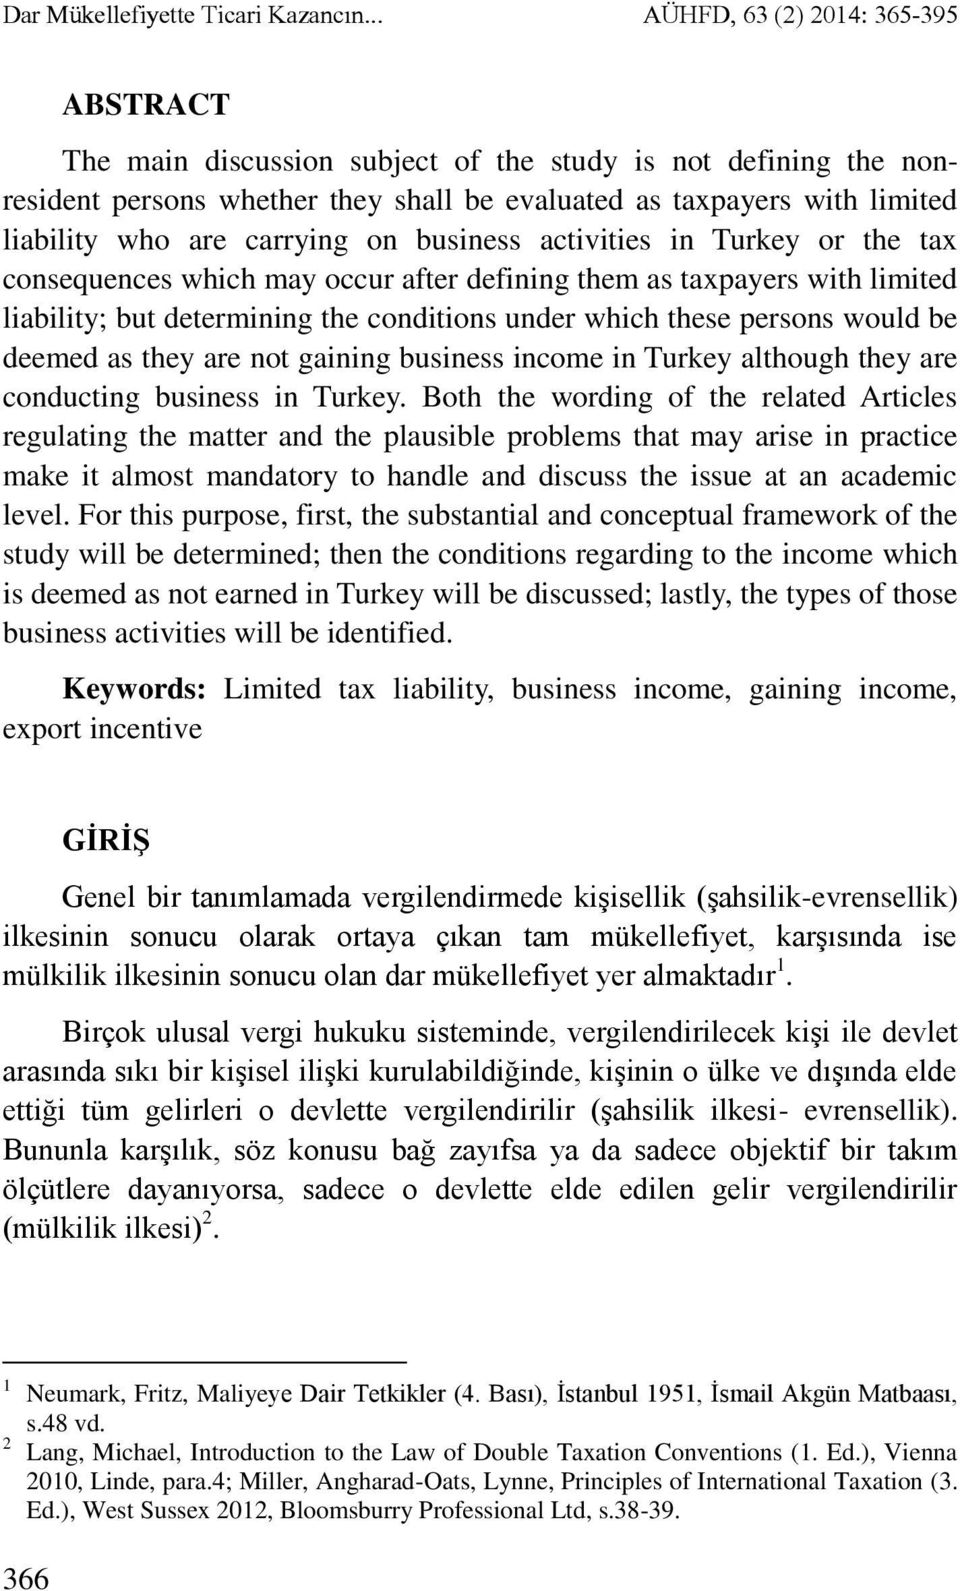 carrying on business activities in Turkey or the tax consequences which may occur after defining them as taxpayers with limited liability; but determining the conditions under which these persons